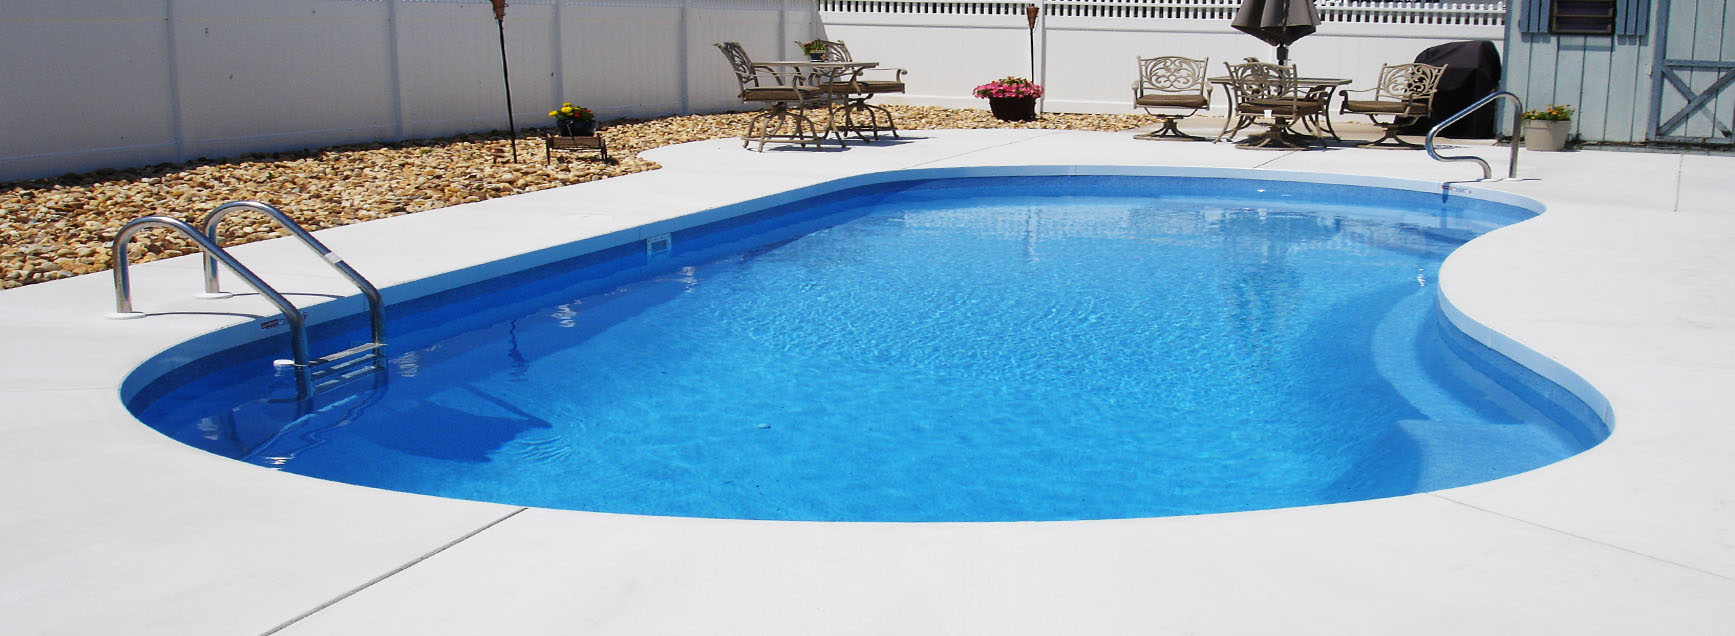 Pools and Pool Decks